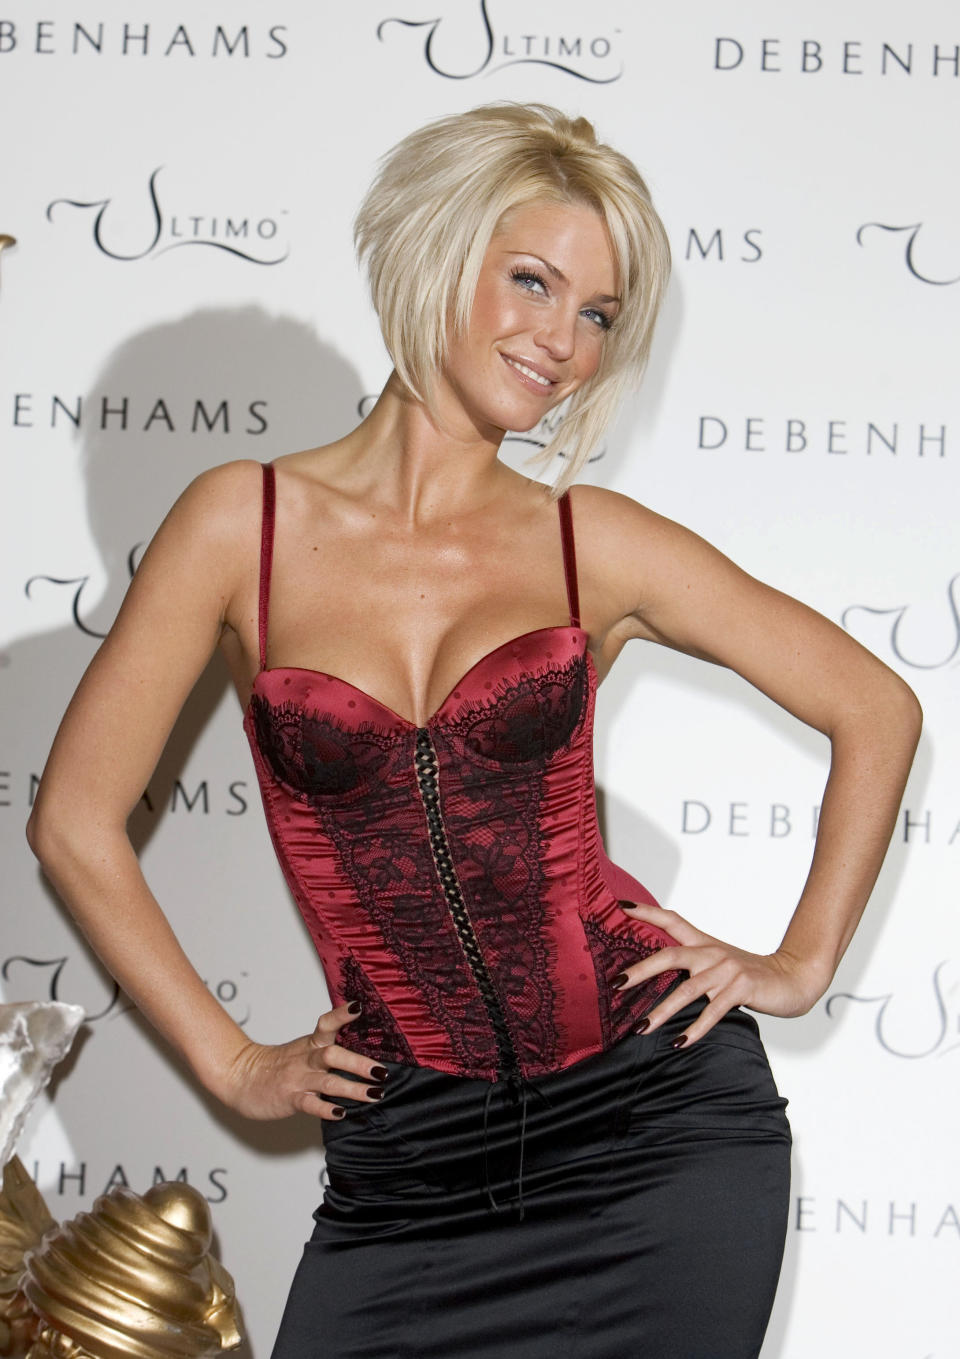 Sarah Harding from Girls Aloud on the red carpet.